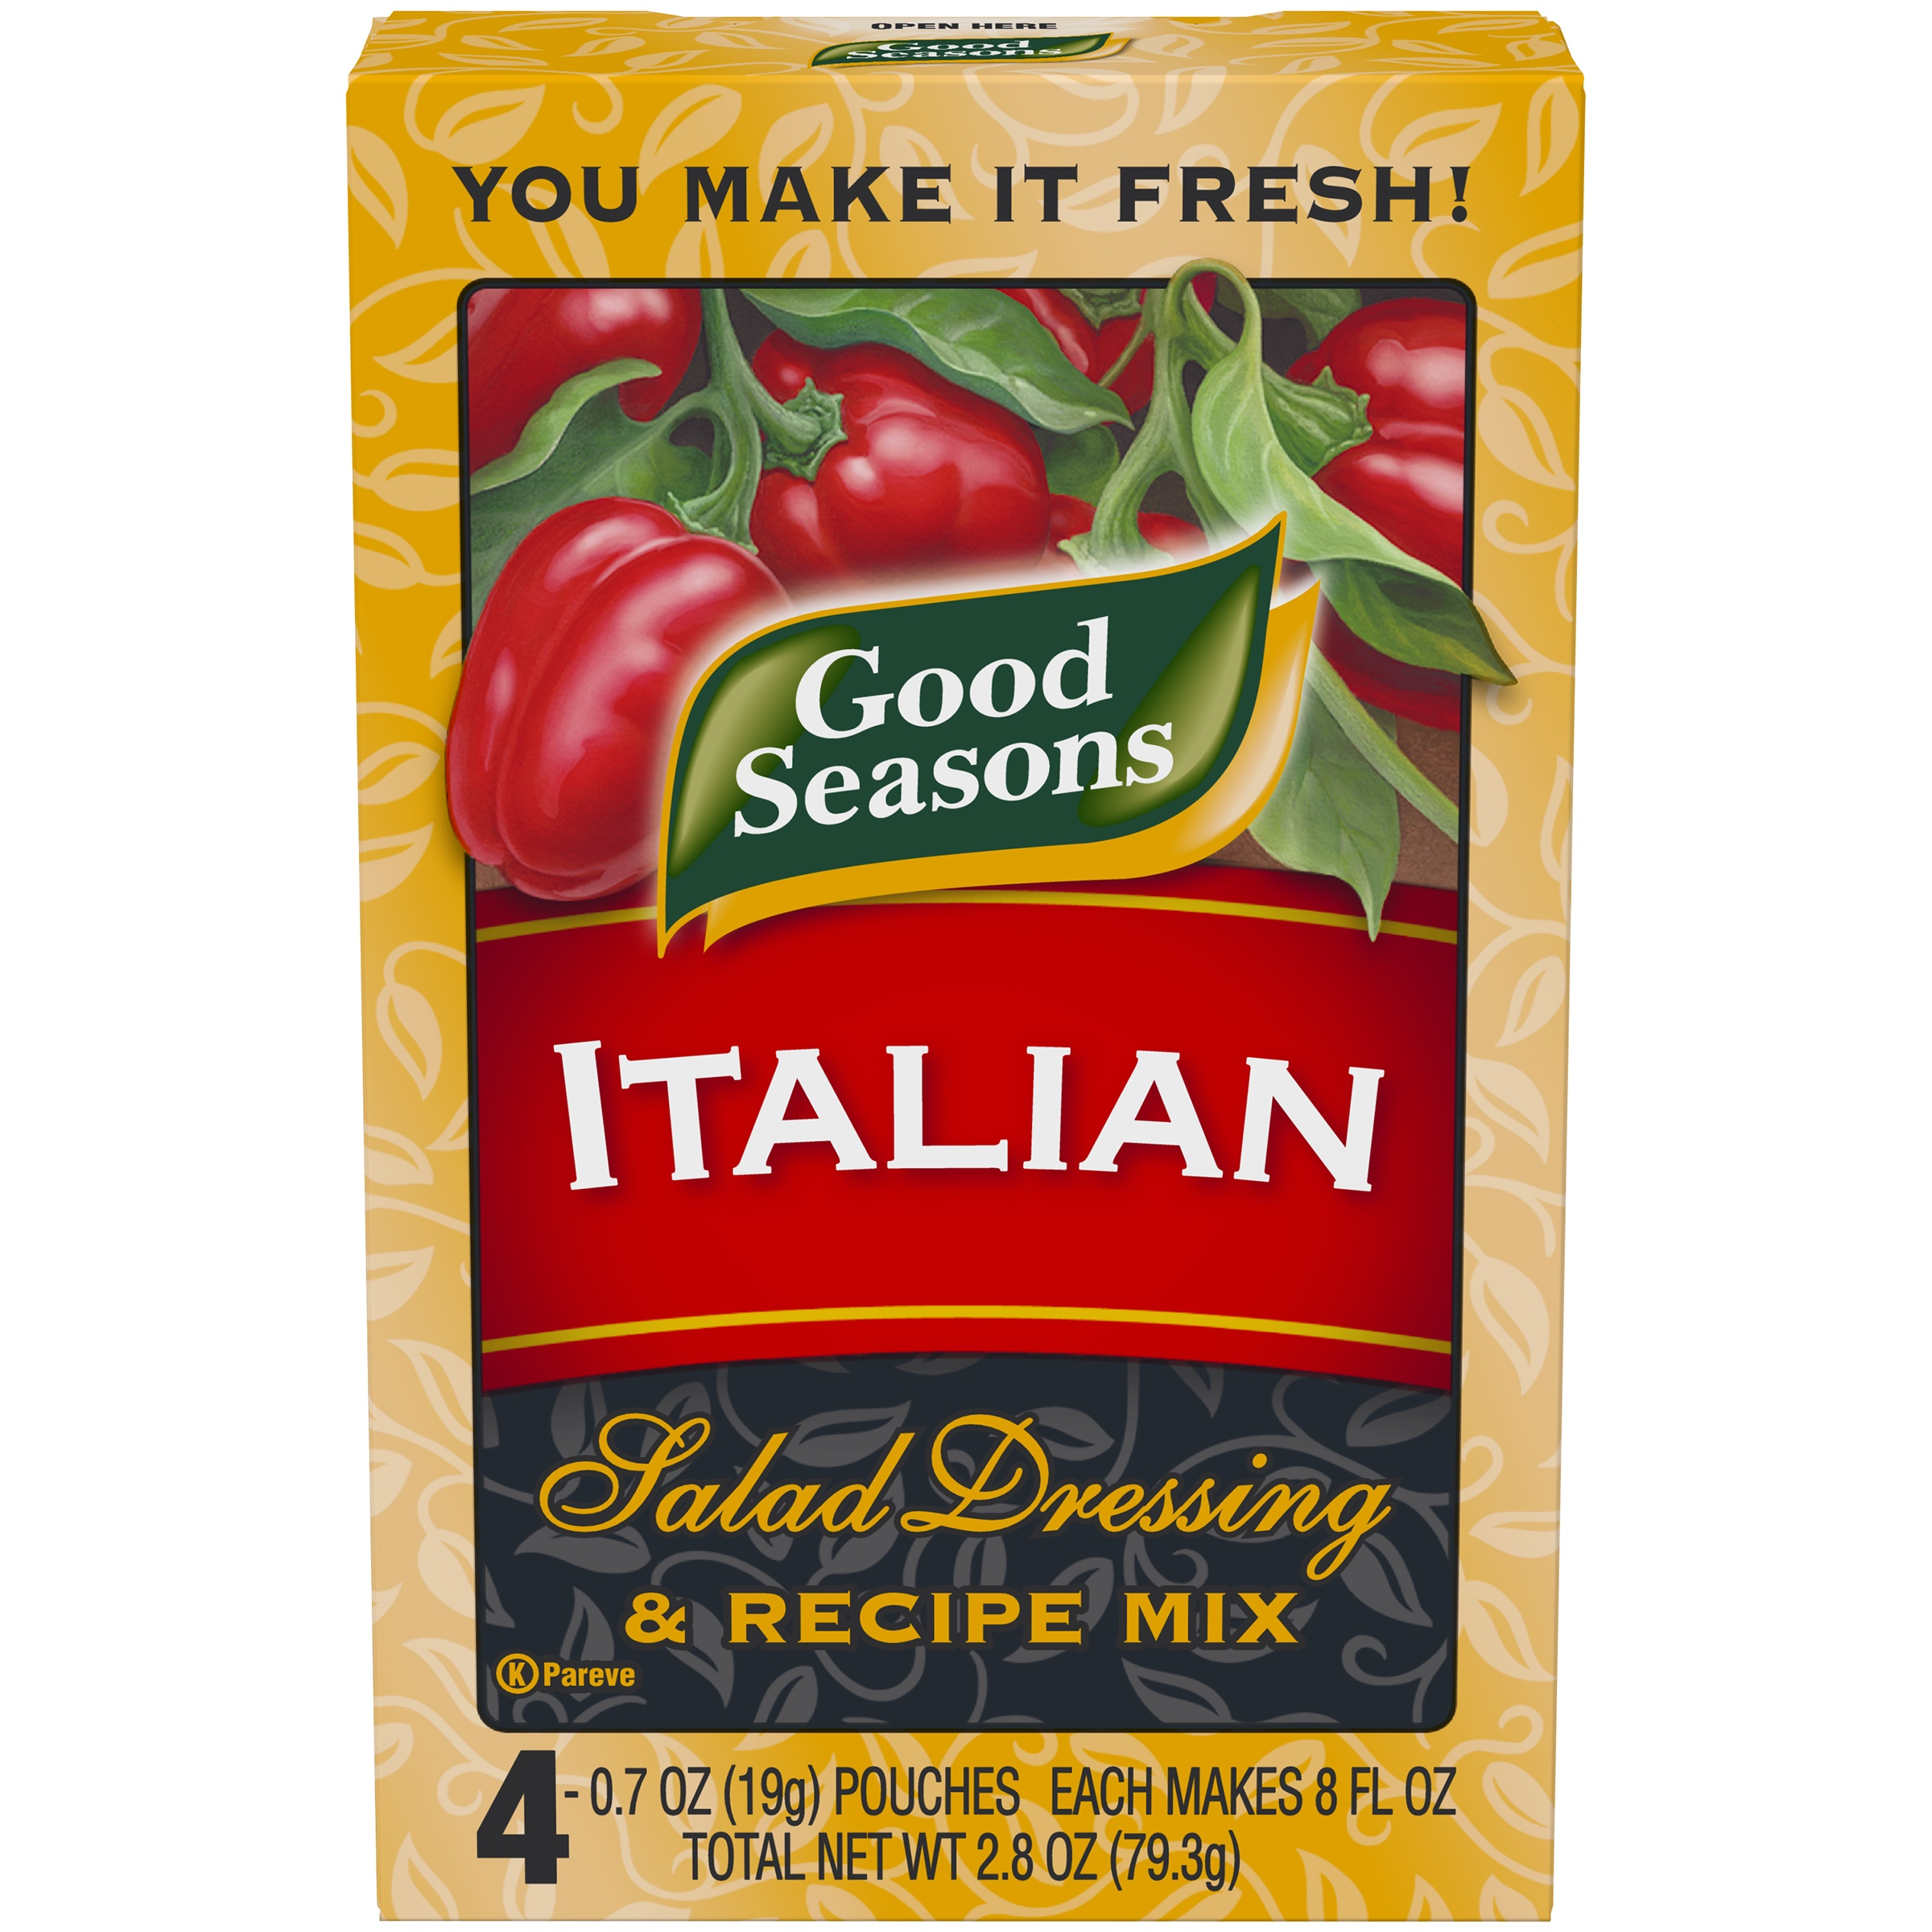 Good Seasons Italian Salad Dressing & Recipe Mix 4-0.7 oz. Packets